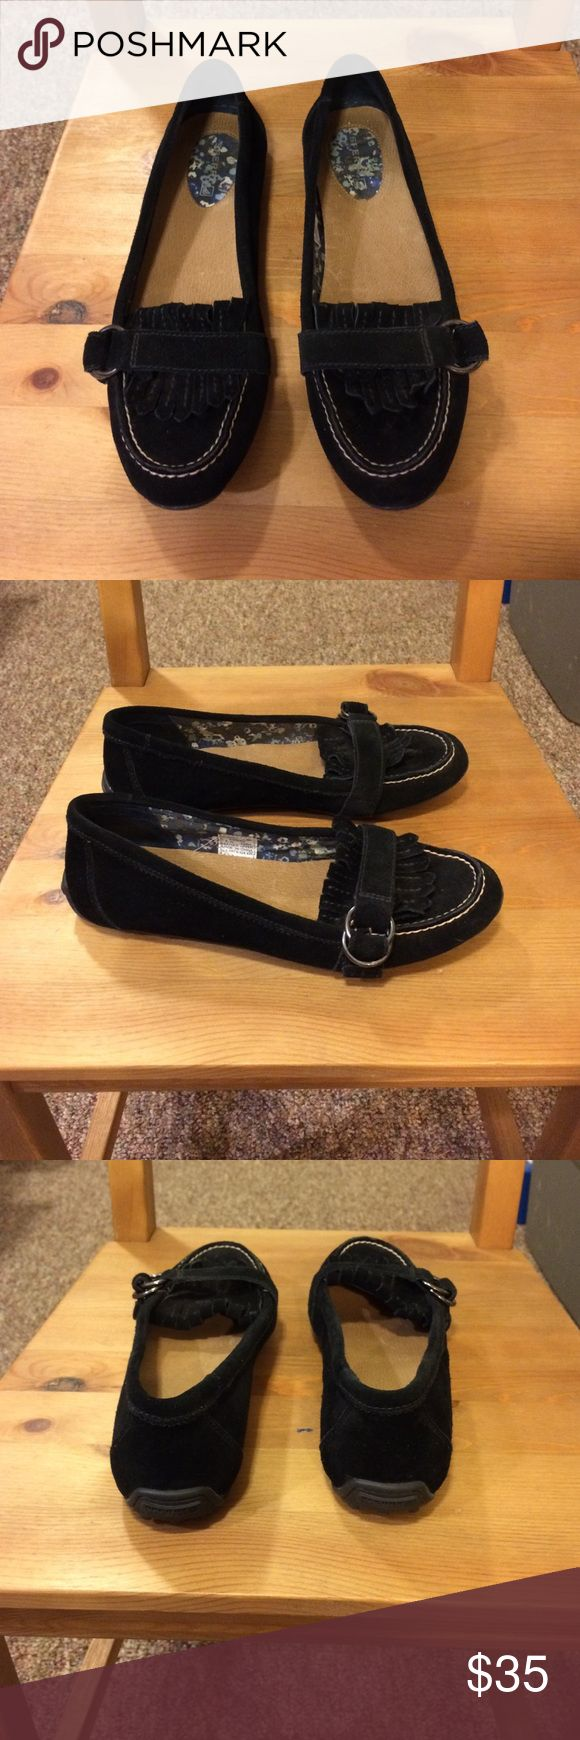 Black Sperry loafers Adorable black Sperrys leather with silver buckles worn once perfect condition Sperry Shoes Flats & Loafers